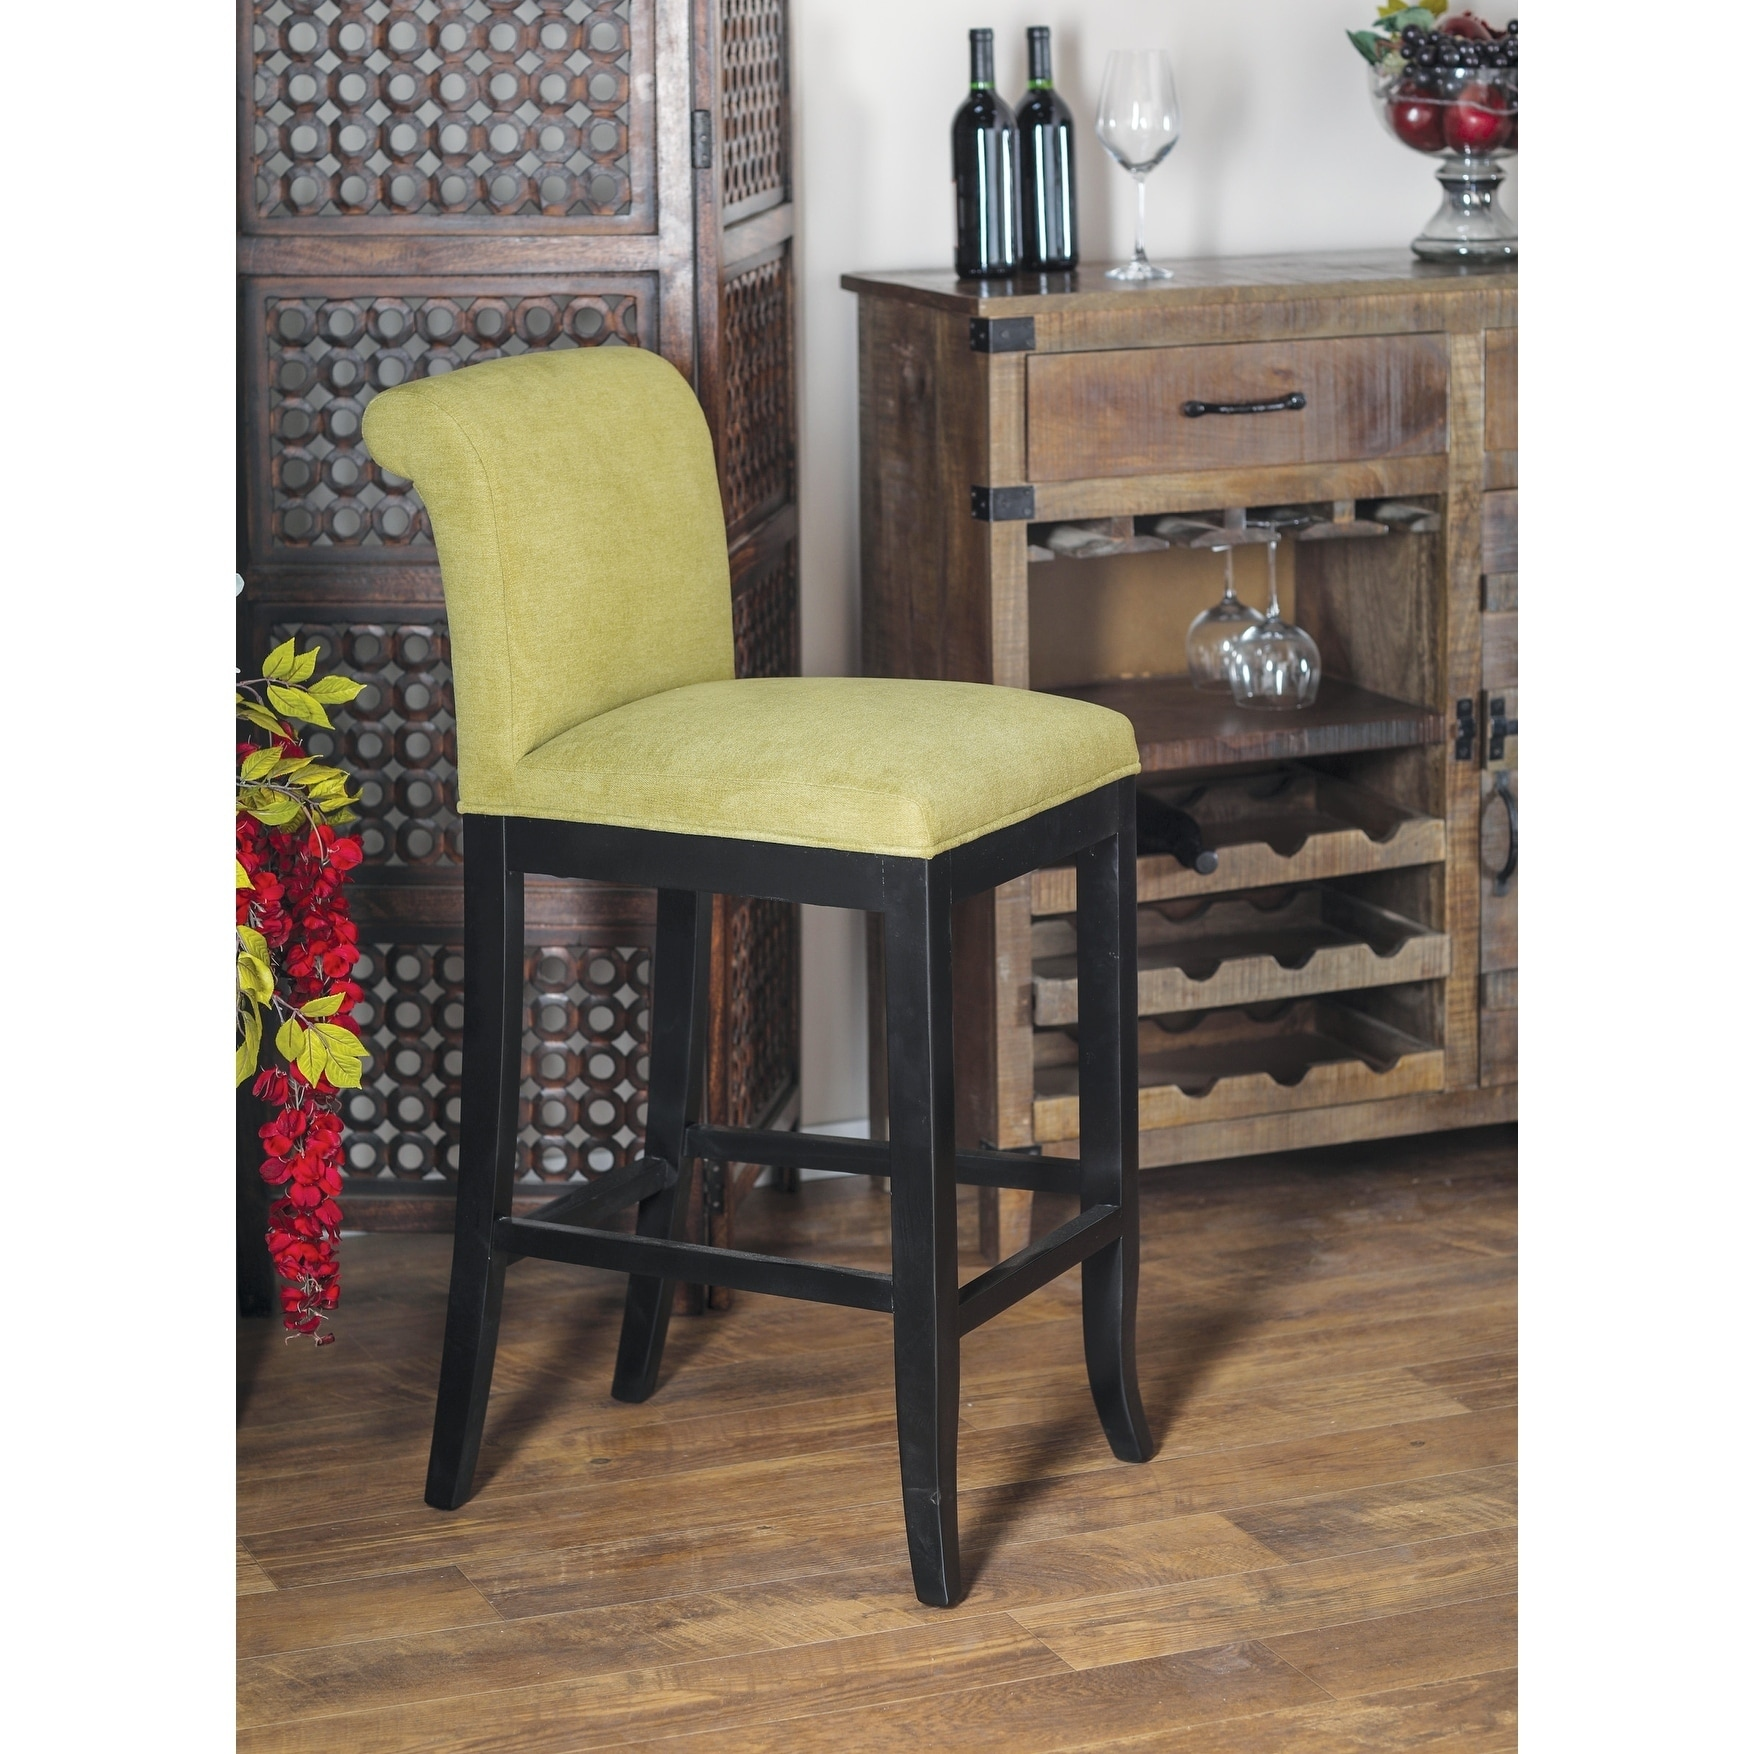 Eclectic 42 x 19 inch green bar stool